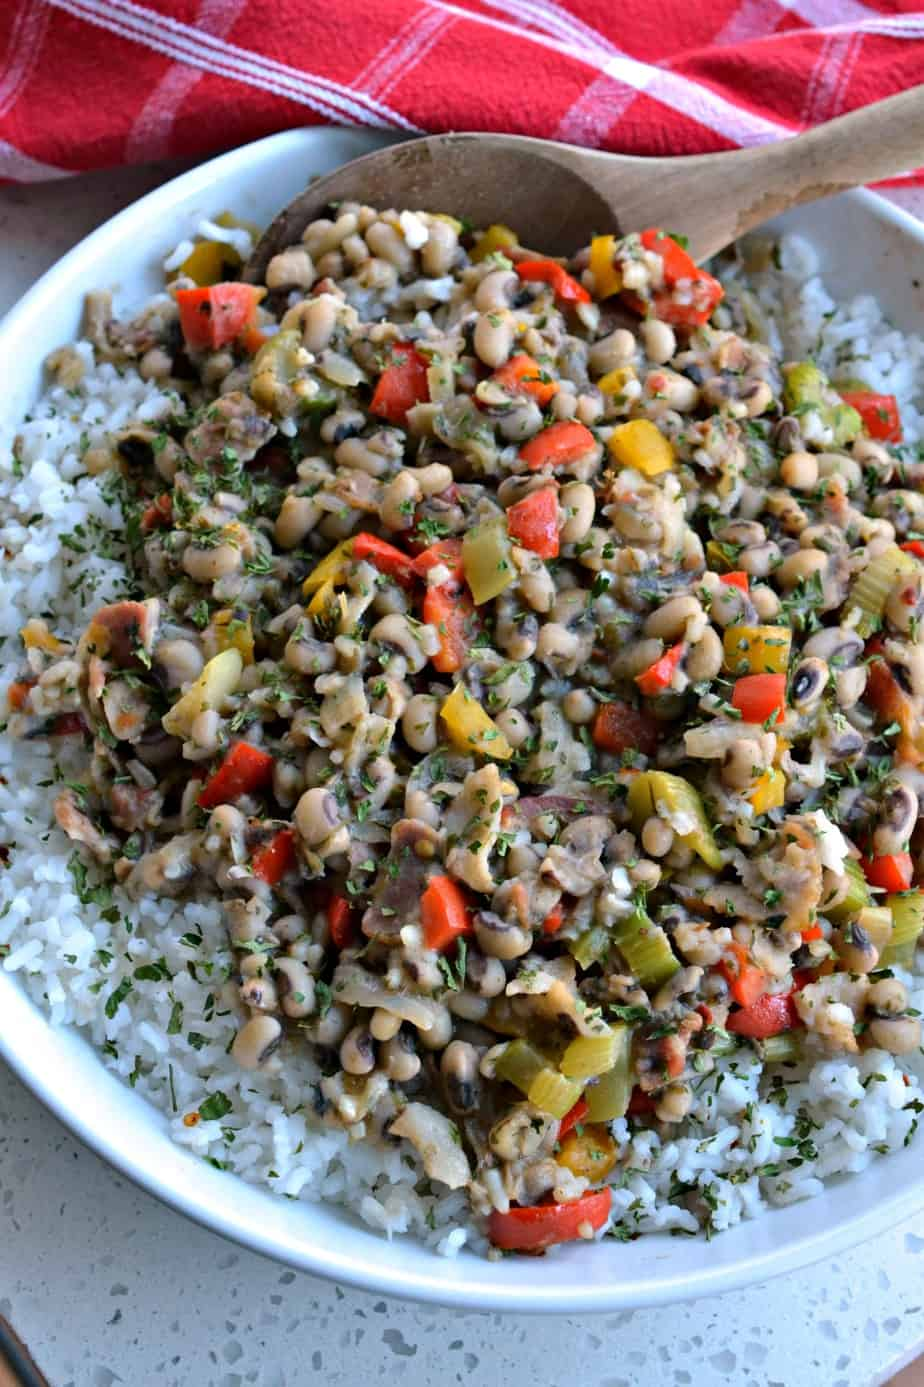 Hoppin' John is a Southern black eyed pea dish with bacon, onions, celery, bell peppers and garlic served over white rice.